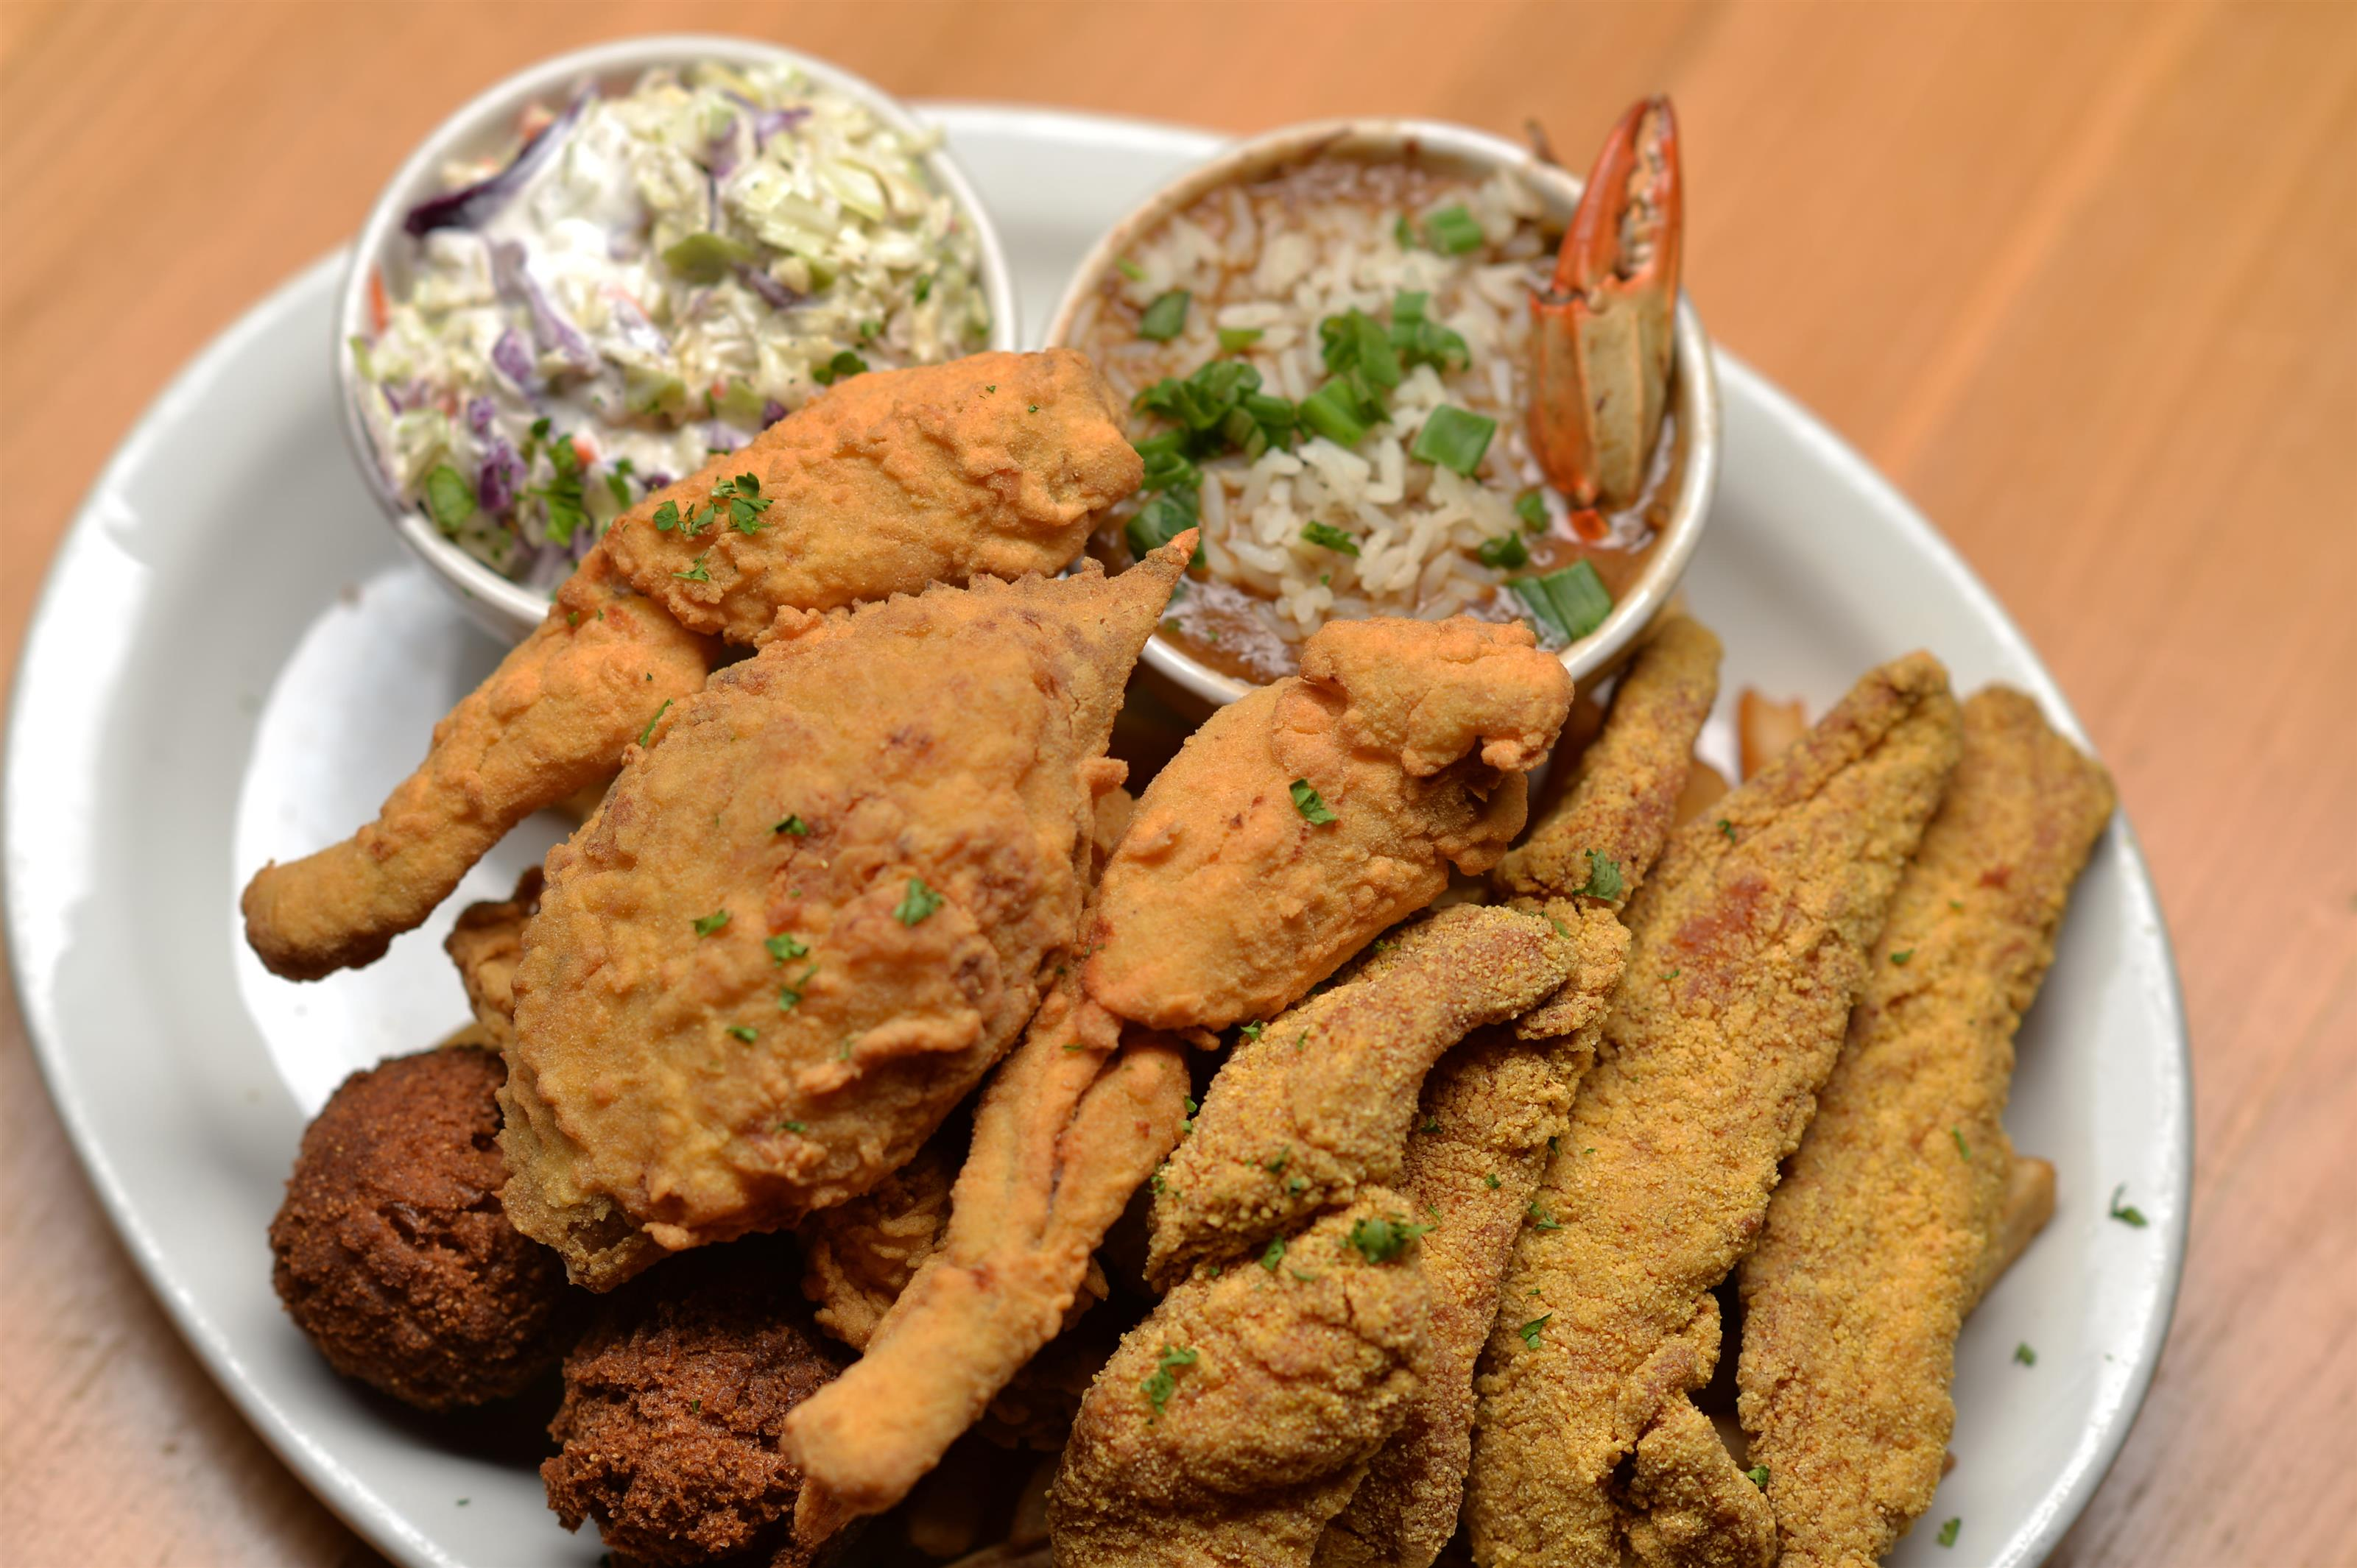 fried chicken and seafood served with coleslaw